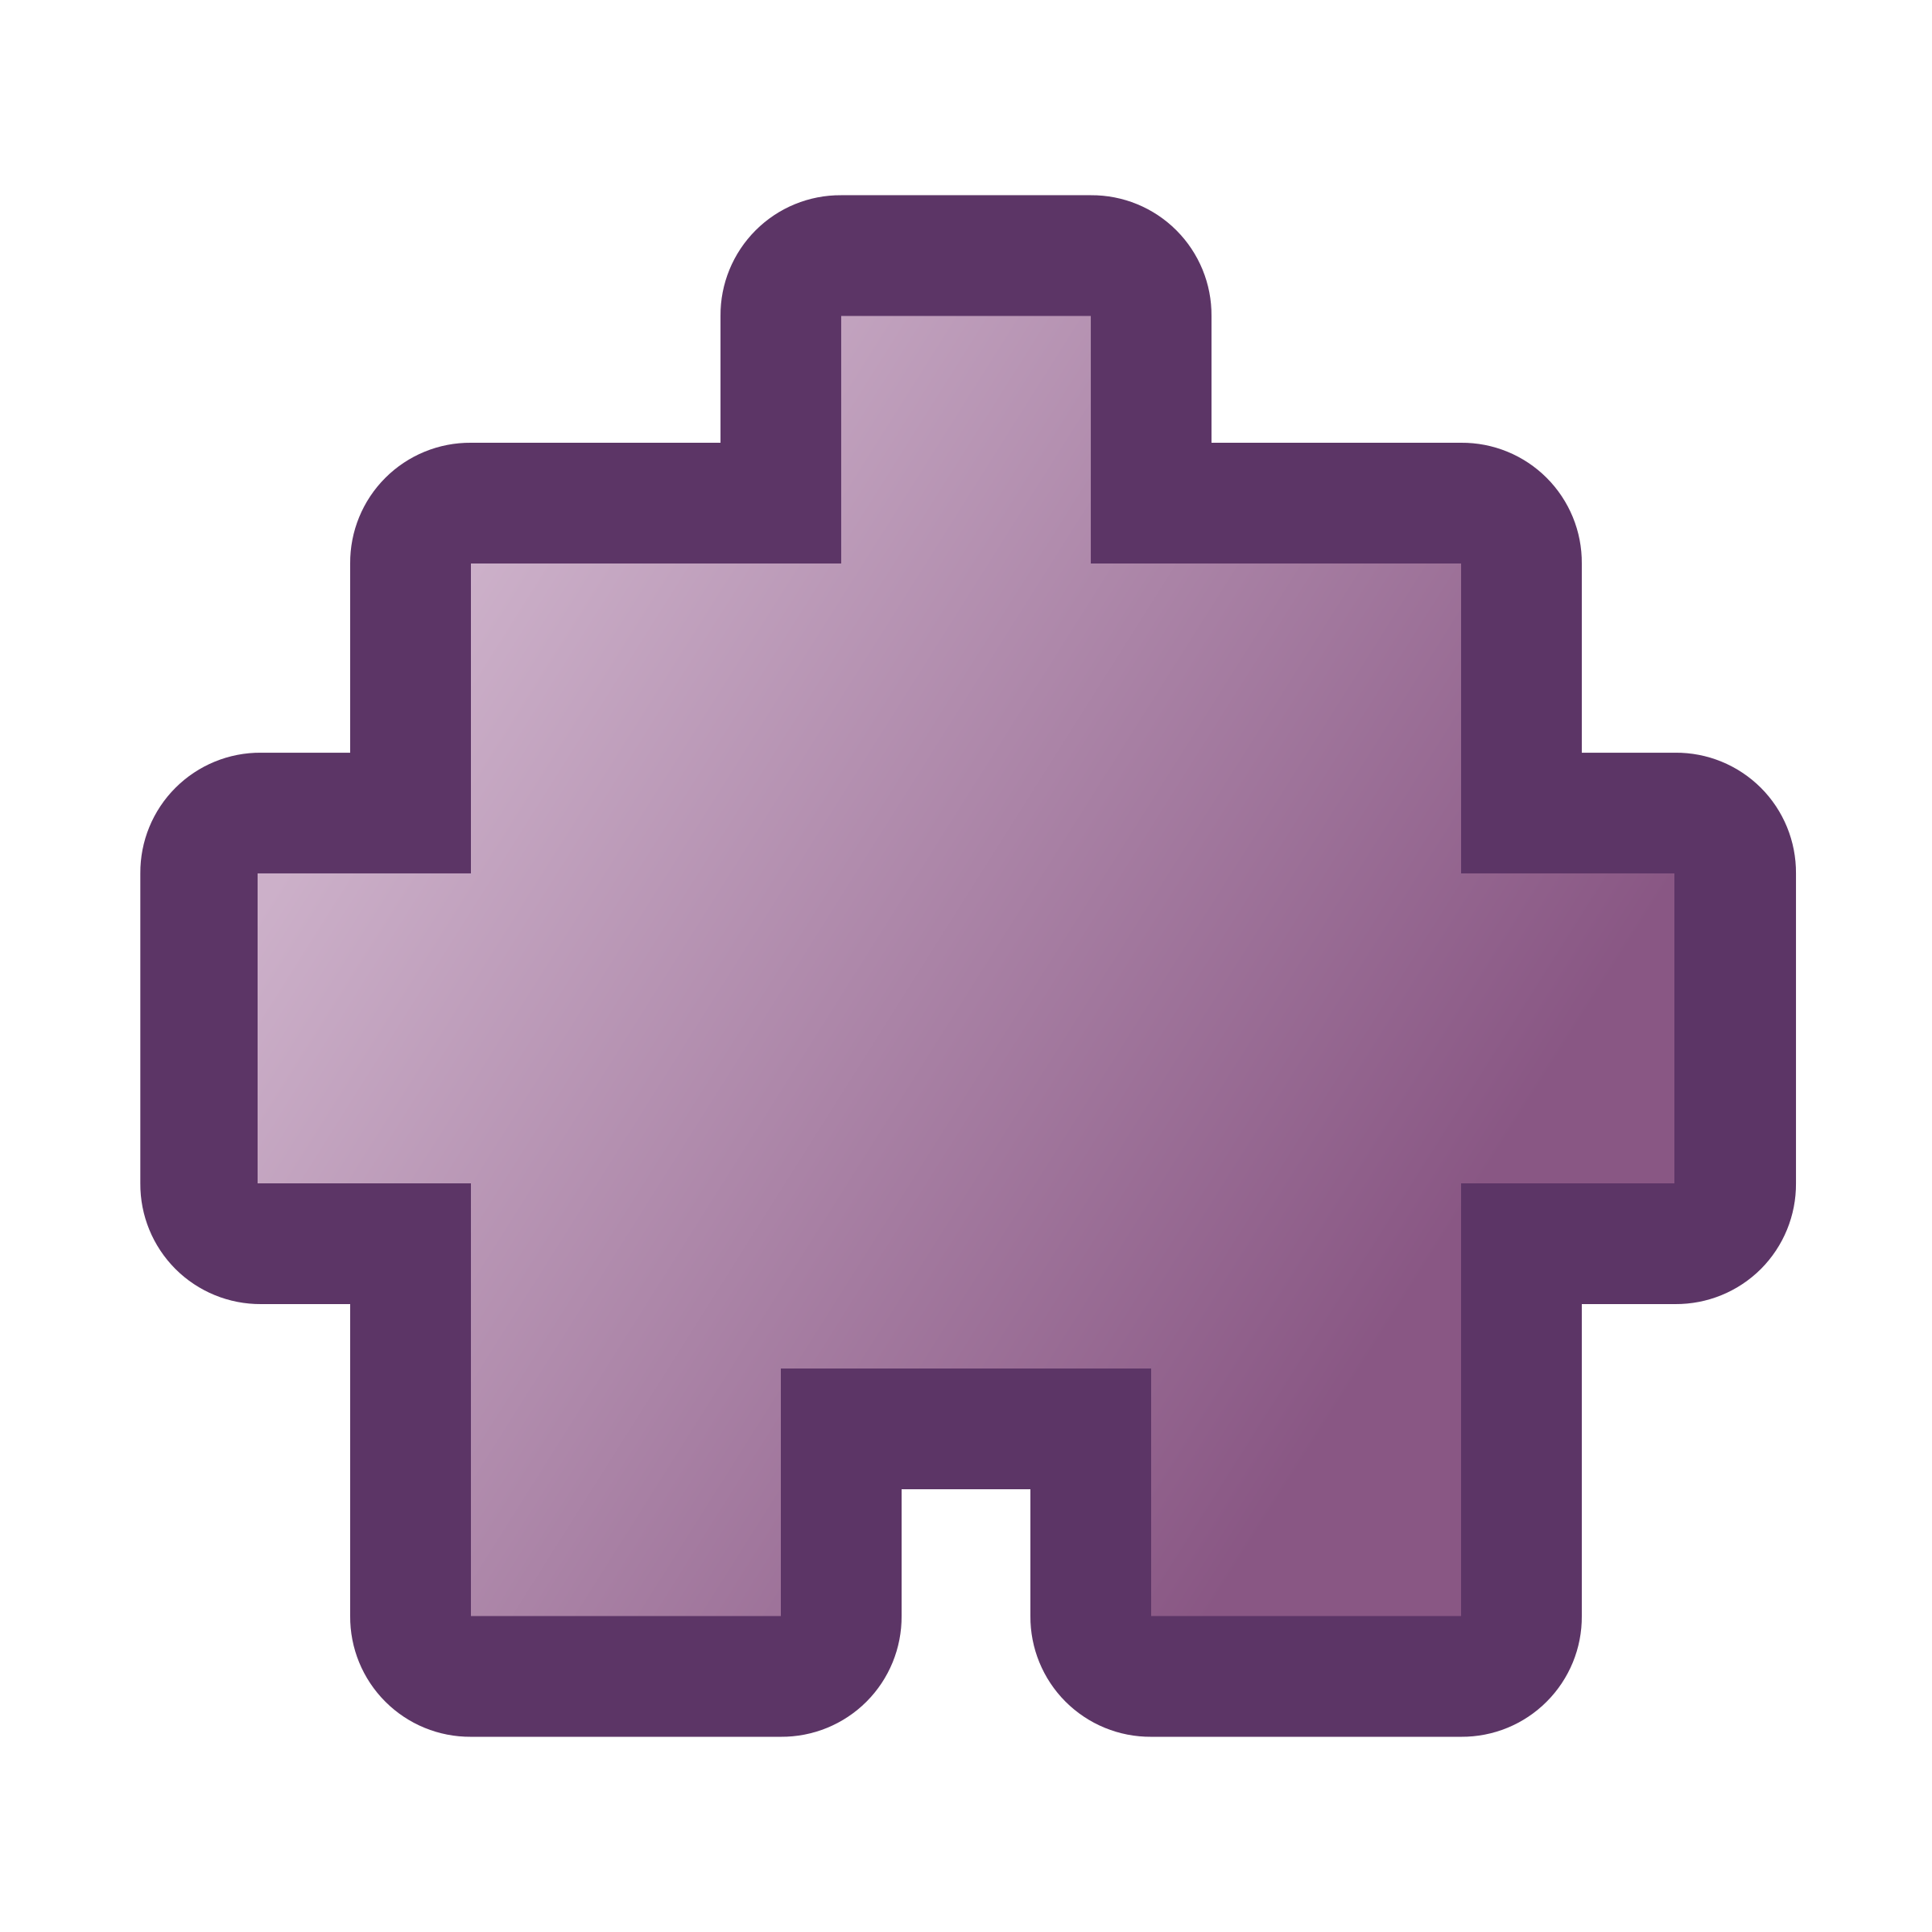 icon-puzzle2-purple by jean_victor_balin